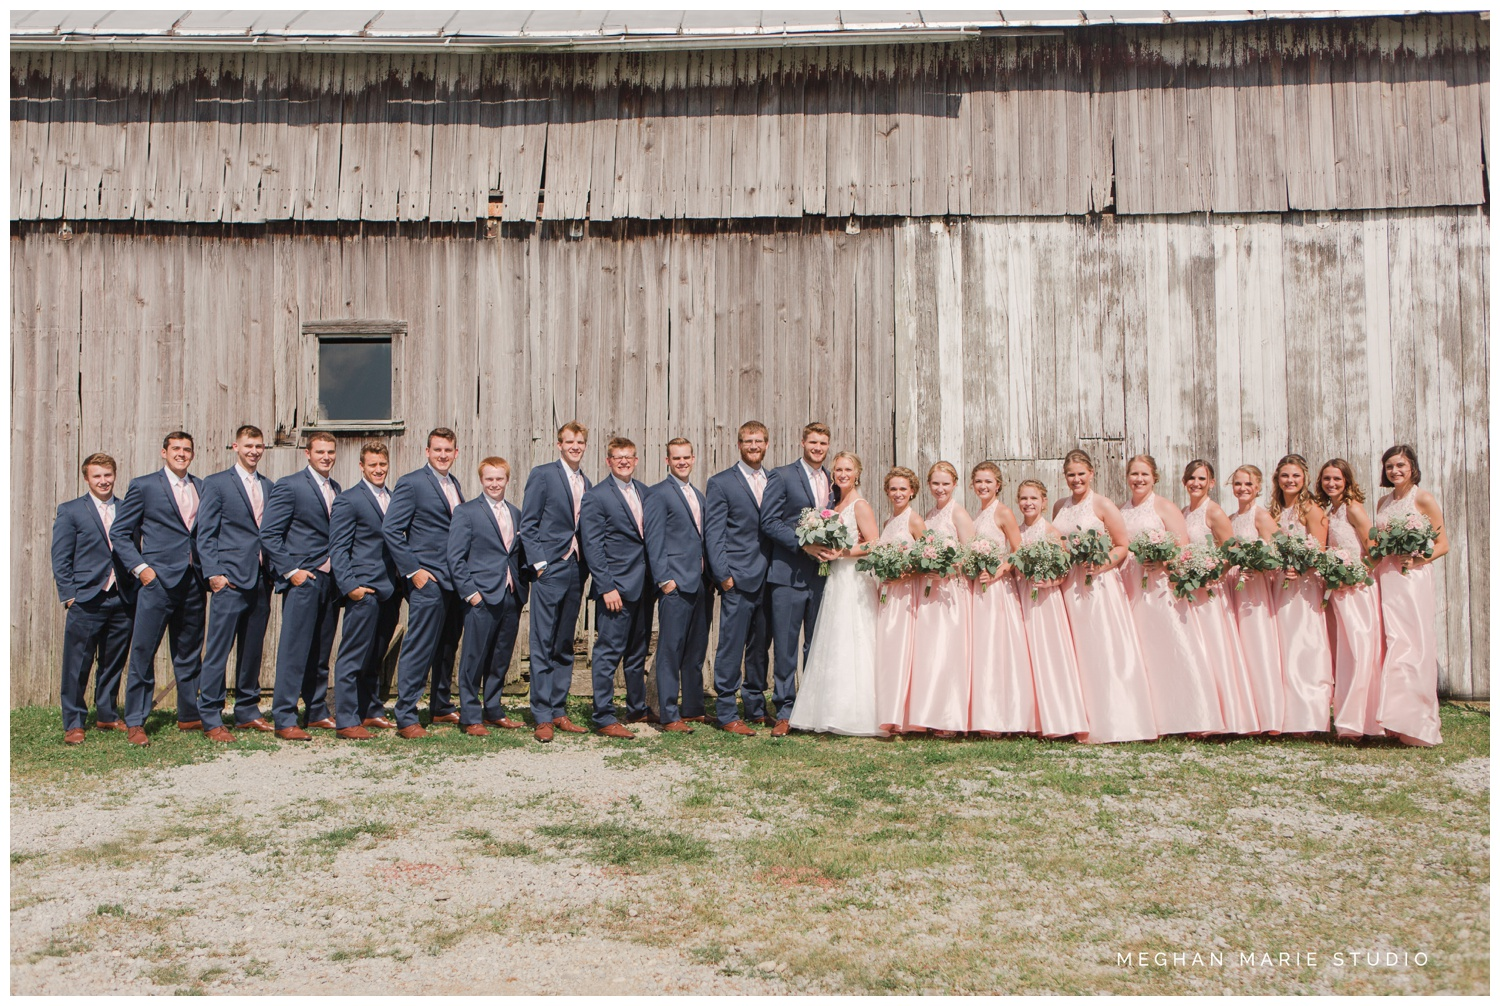 meghan marie studio ohio wedding kyle ahrens msu michigan state basketball spartans navy blush rustic barn soft warm bright bubbles catholic church_0387A.jpg